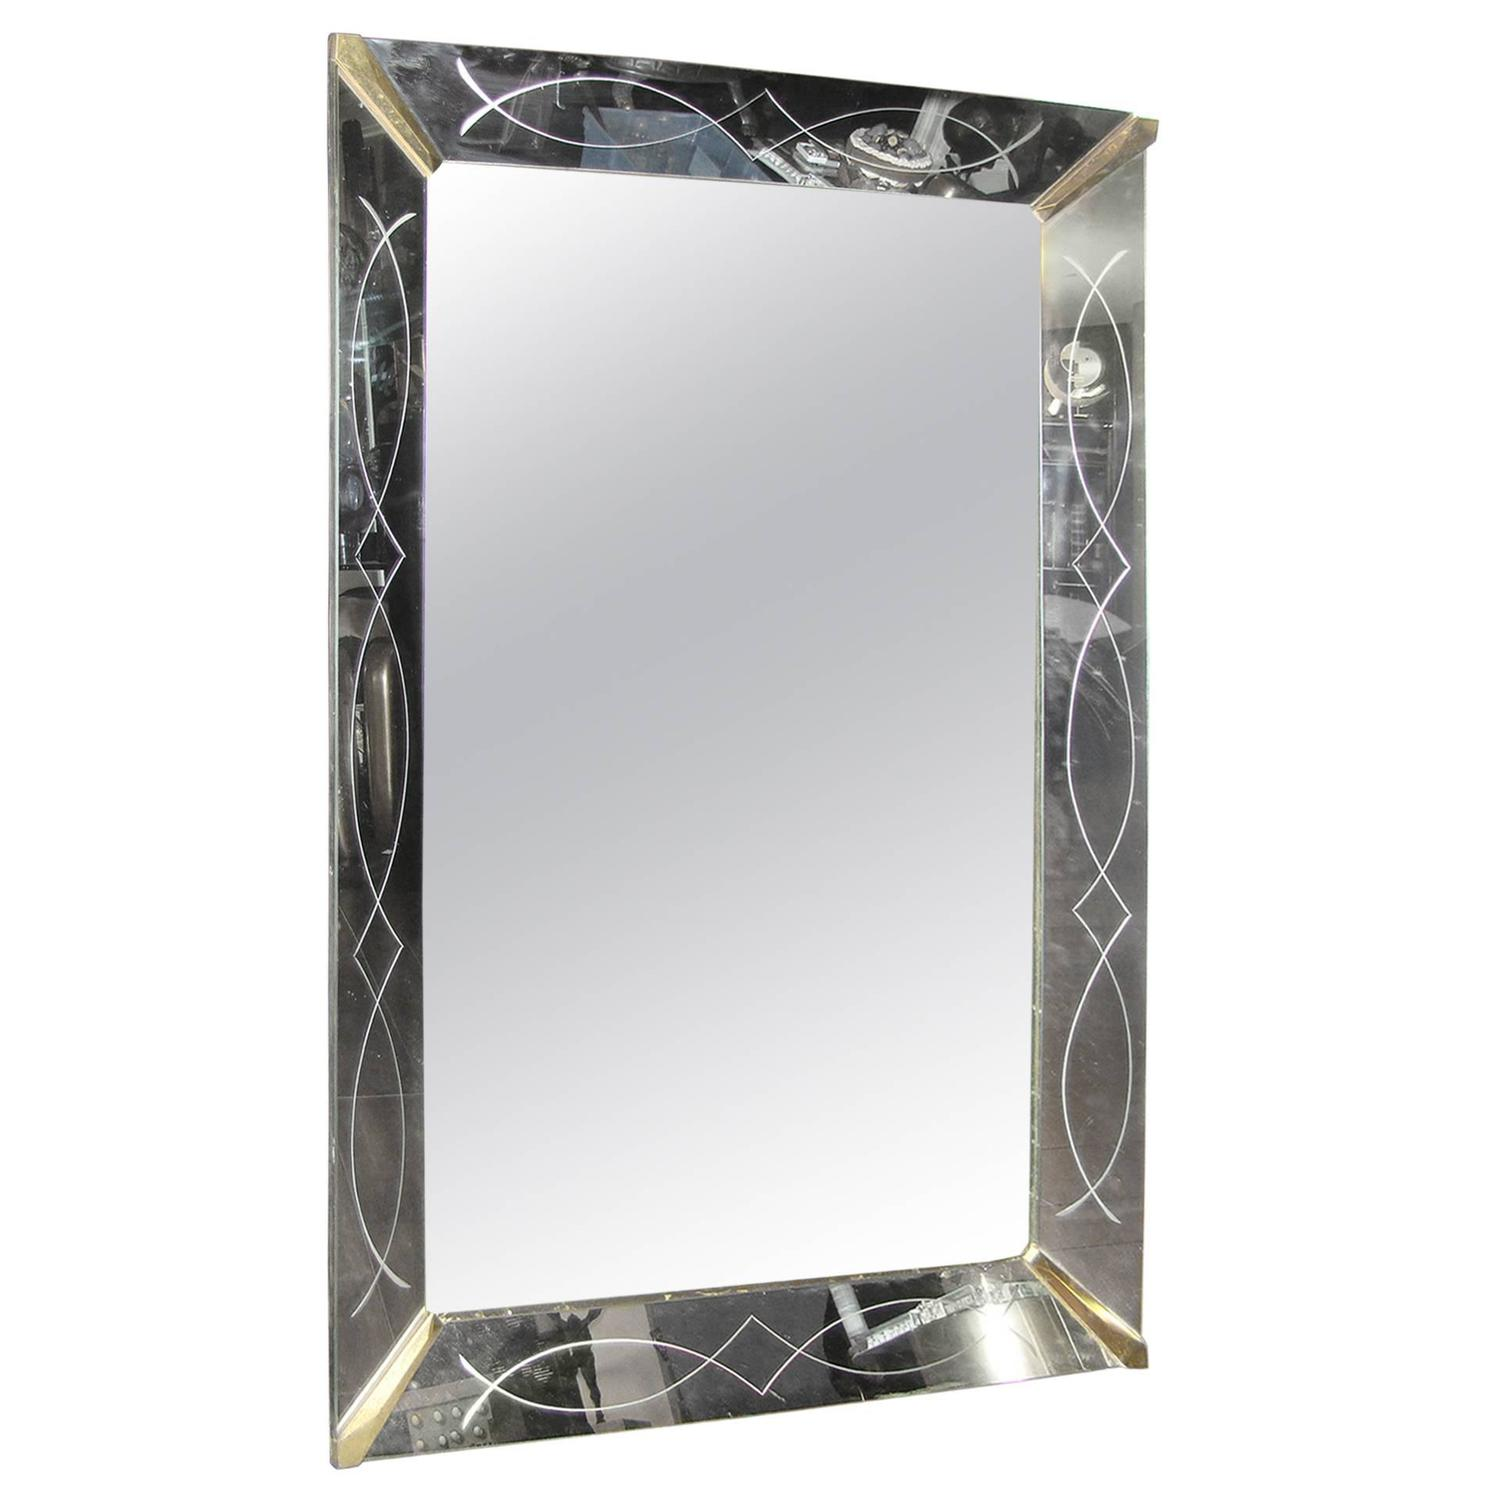 Art Deco Reverse Etched Glass Wall Hanging Mirror at 1stdibs